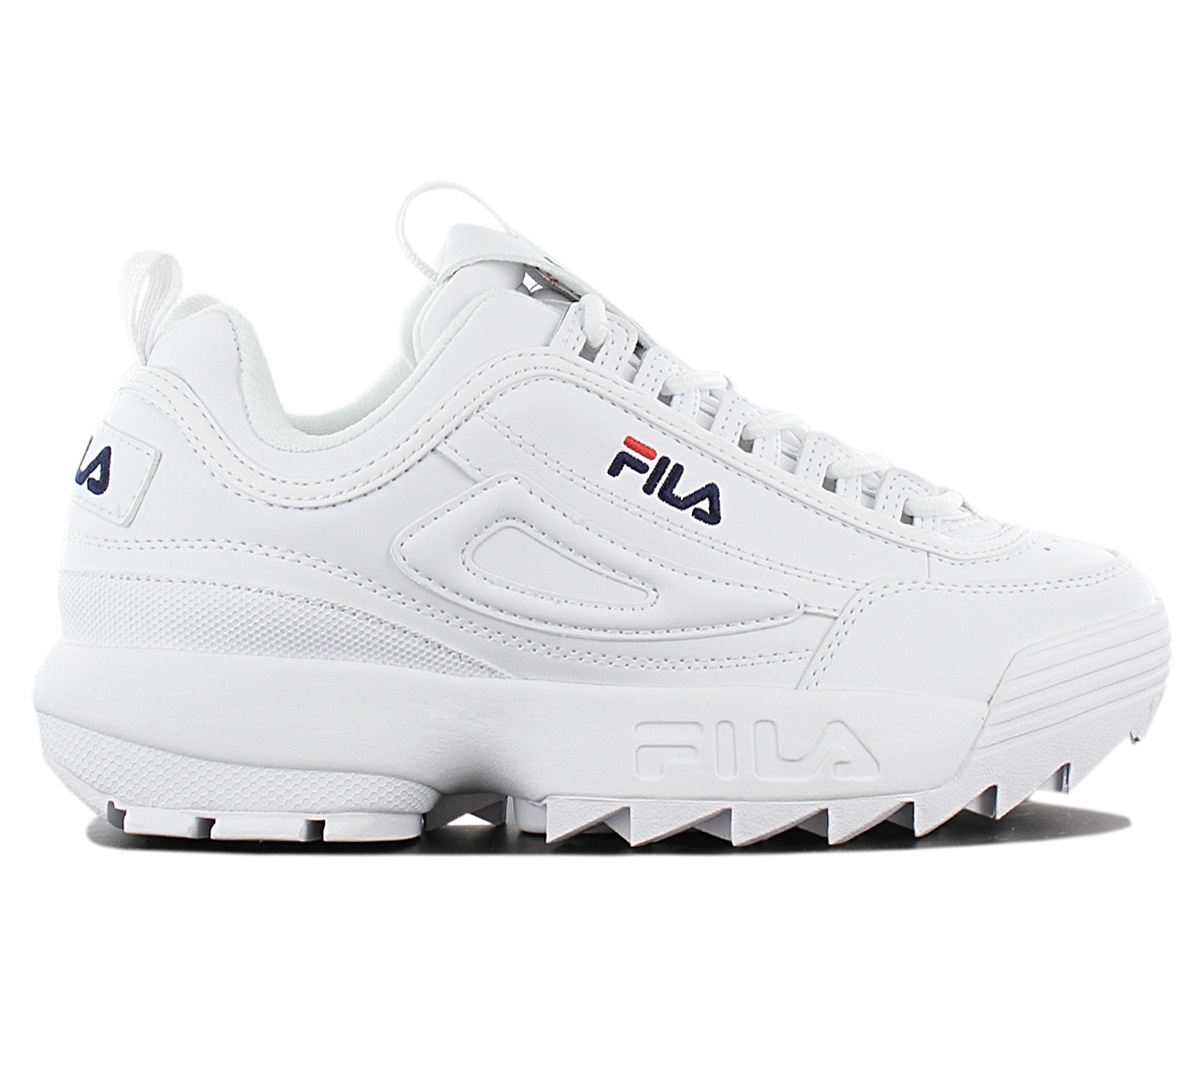 Details about Fila Disruptor Low W Women's Sneaker Shoes 1010302.1FG White Casual Trainers